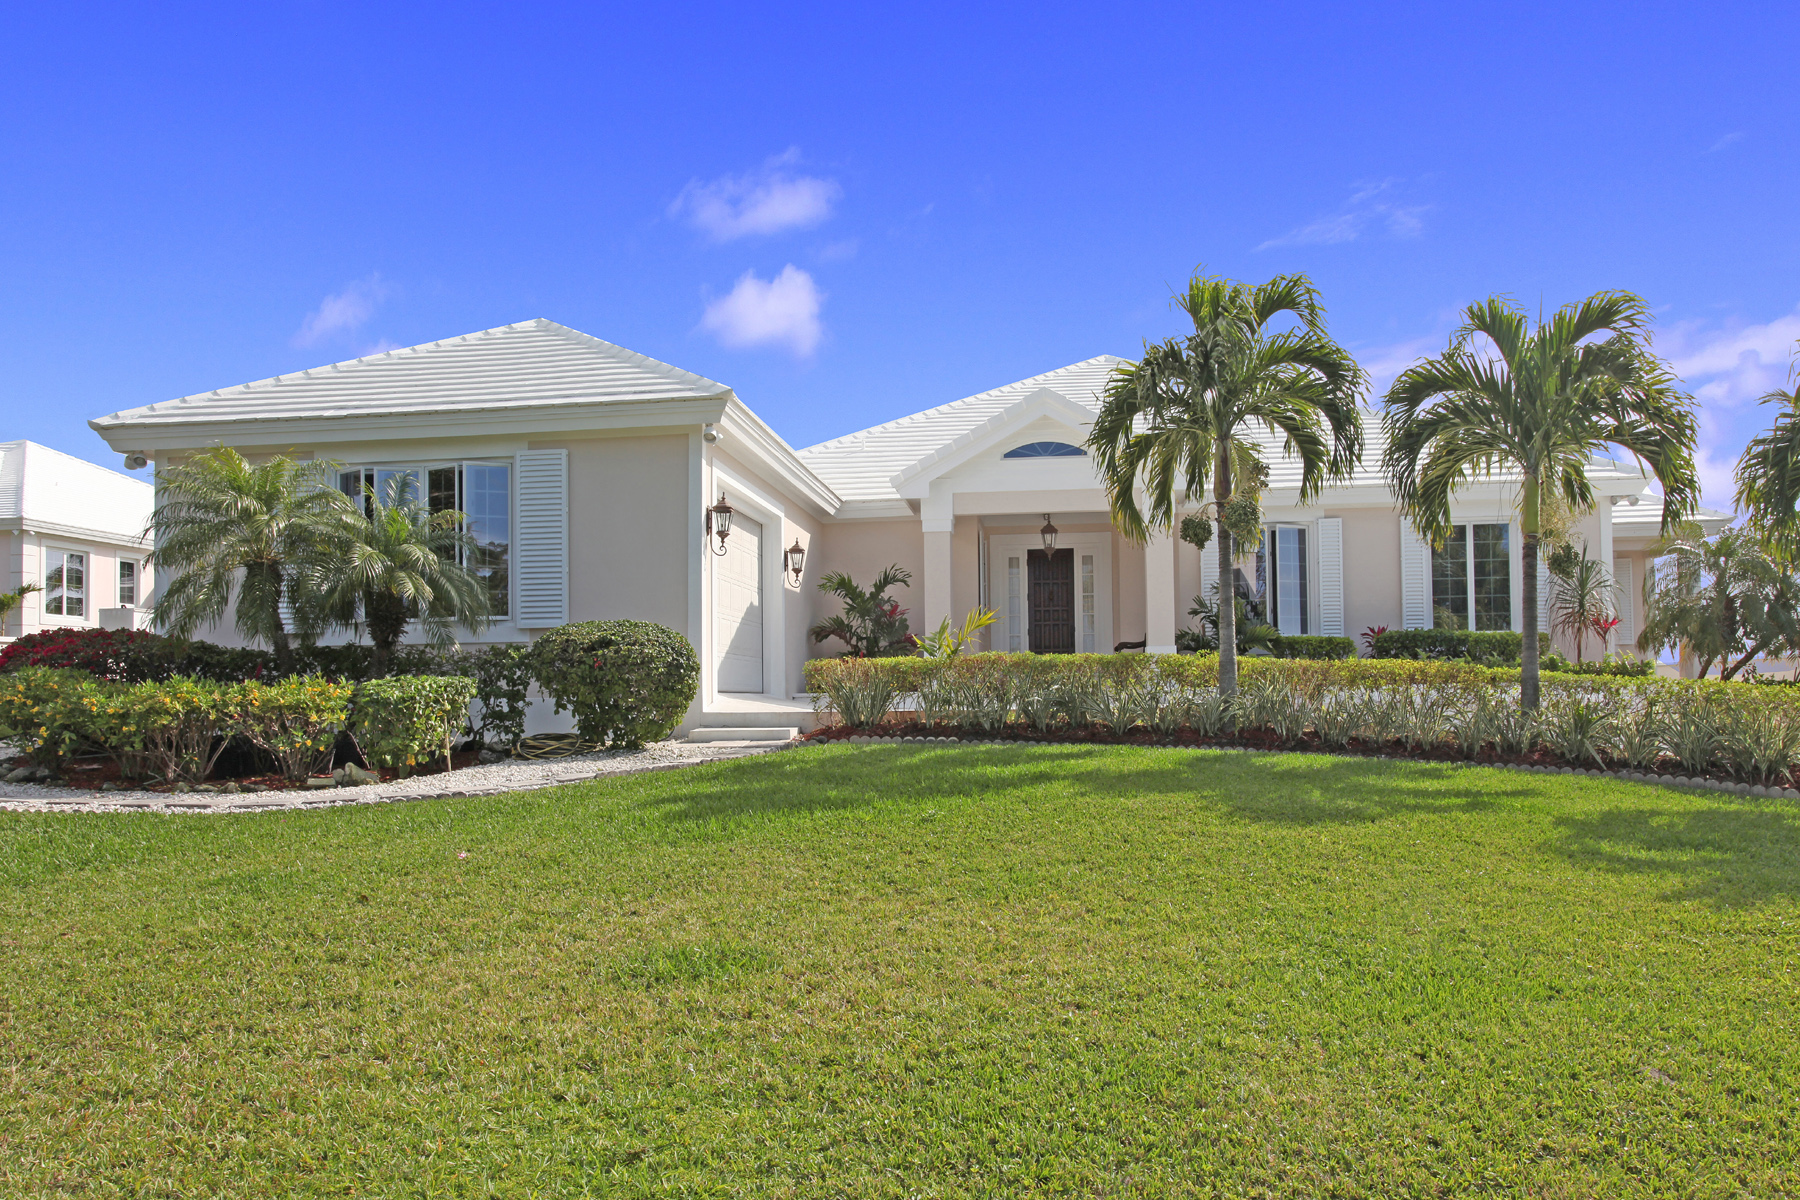 Single Family Home for Sale at Love & Laughter Marsh Harbour, Abaco Bahamas